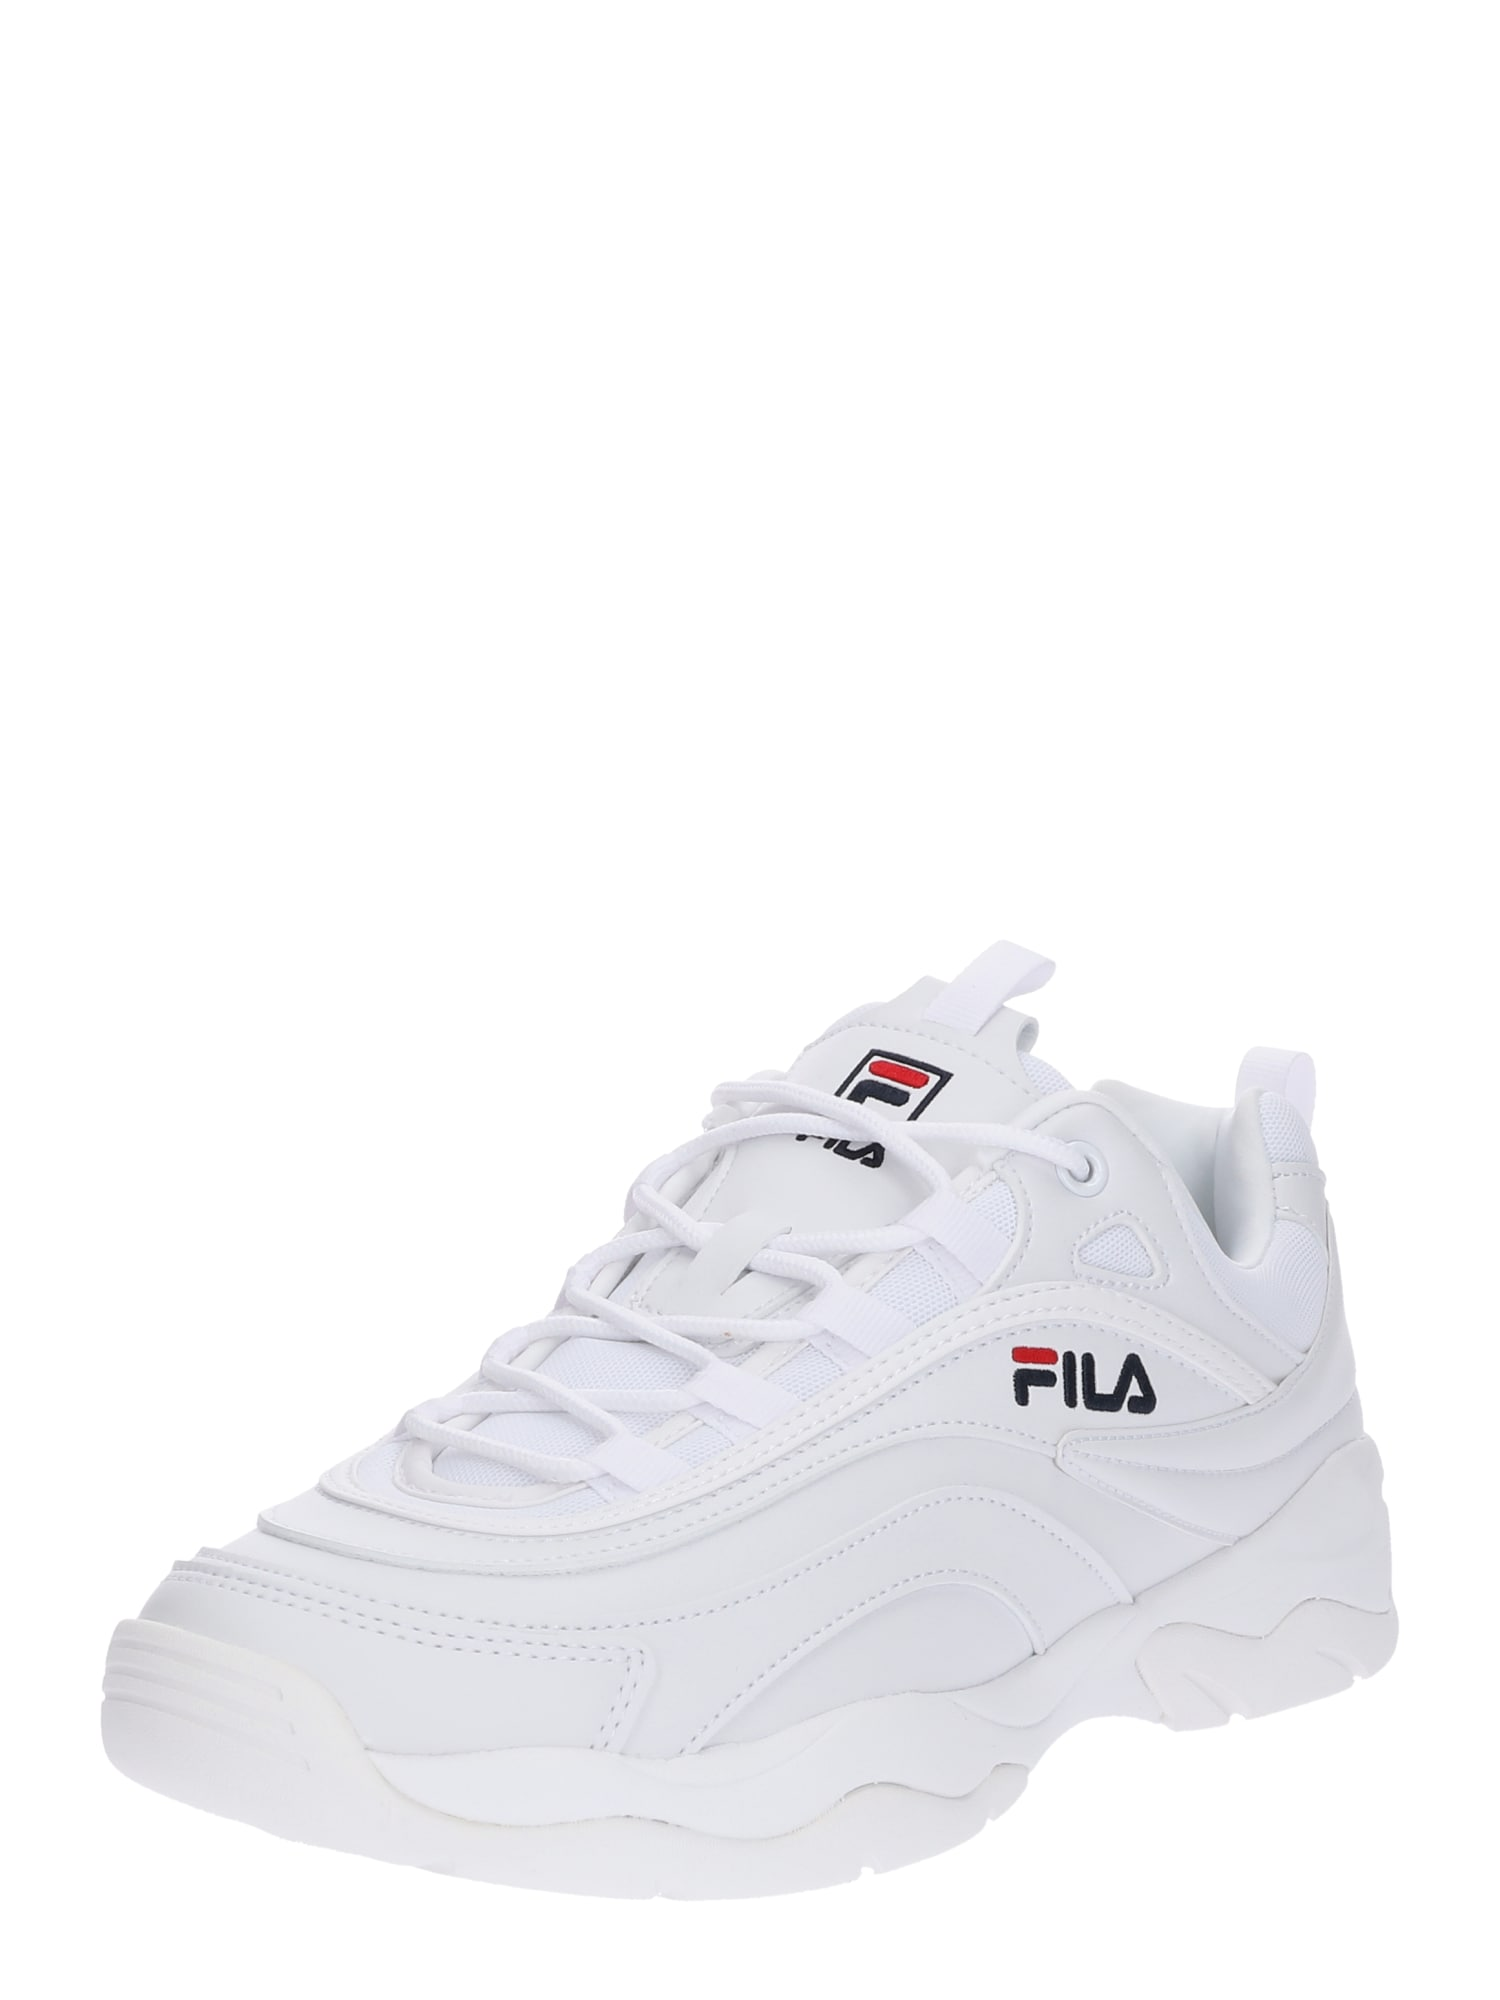 FILA, Heren Sneakers laag 'Ray Low', wit